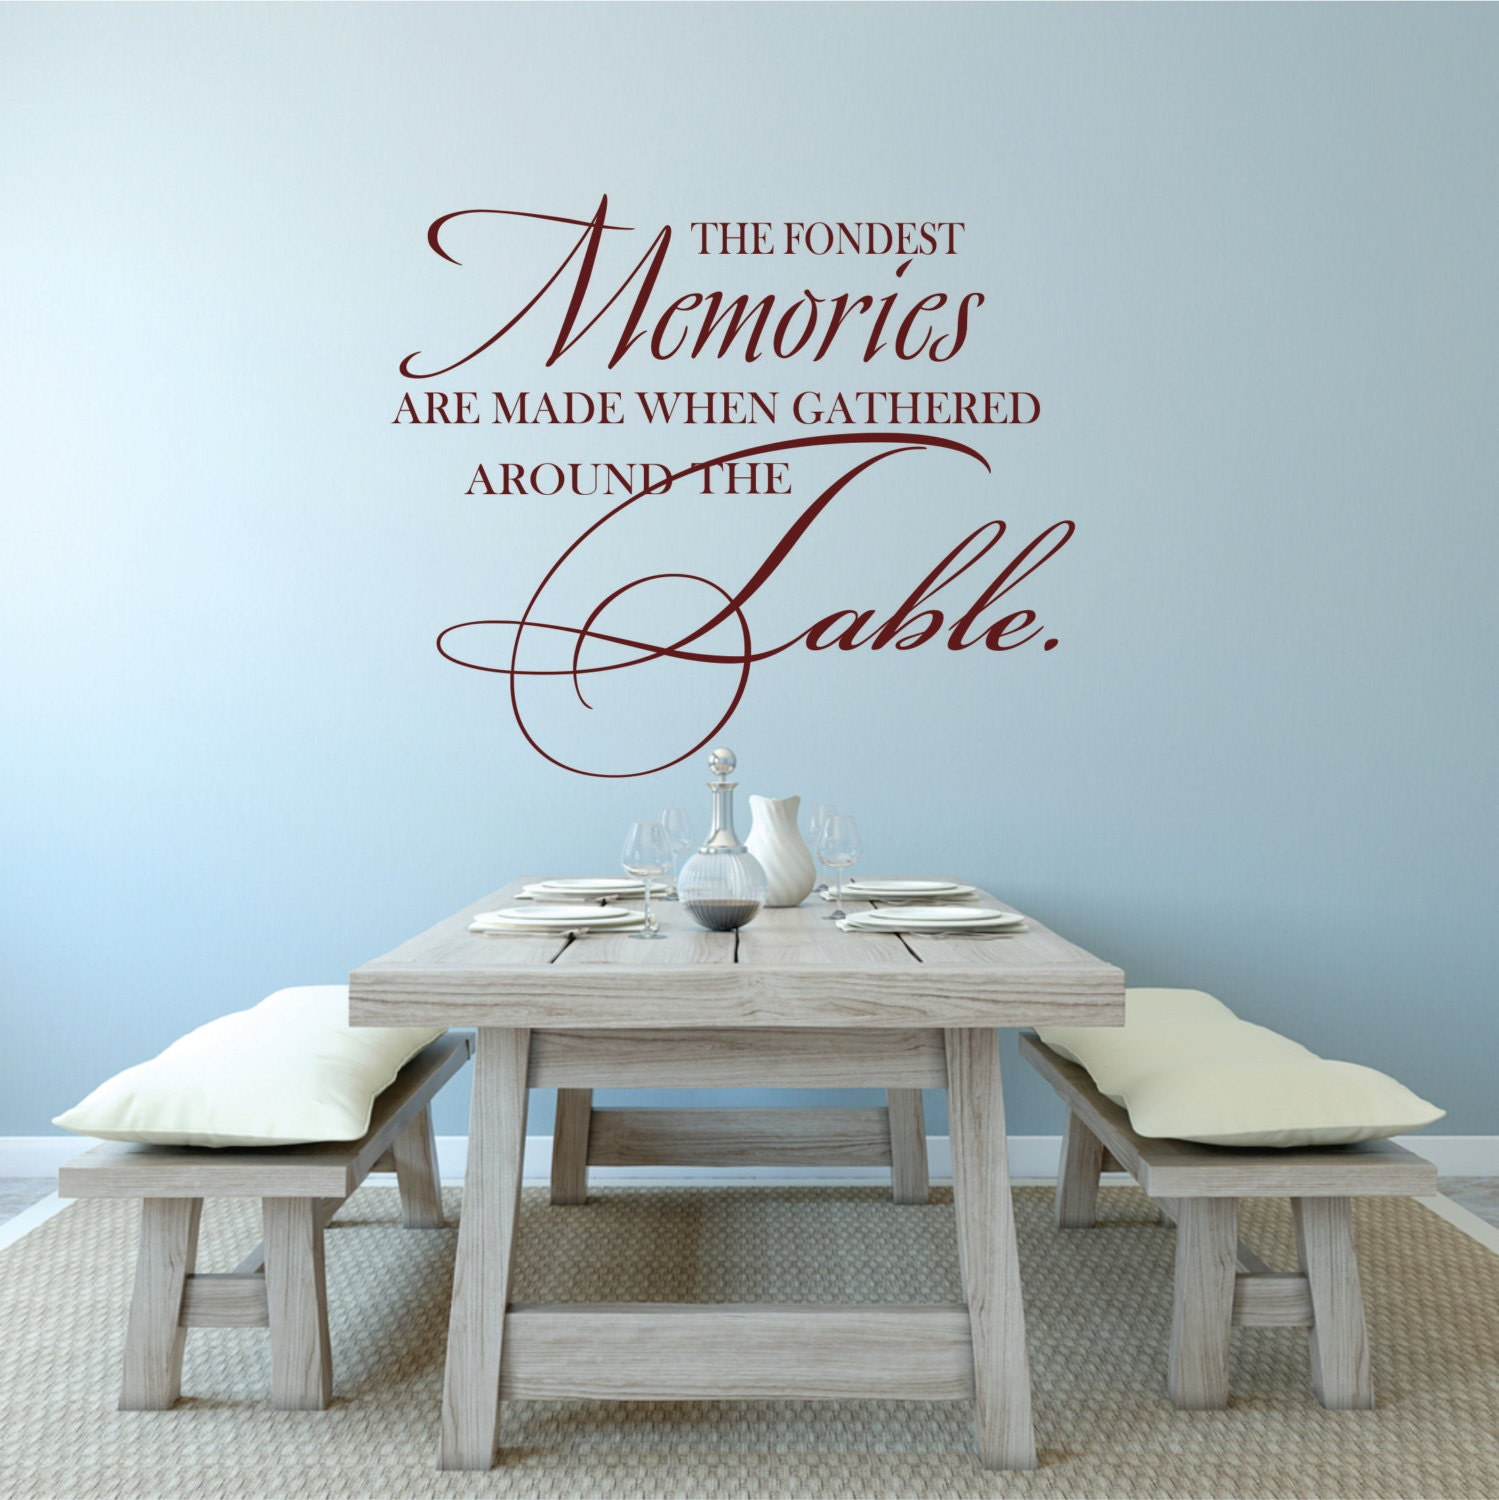 Dining room decal family wall decal dining table decal for Dining room wall decals